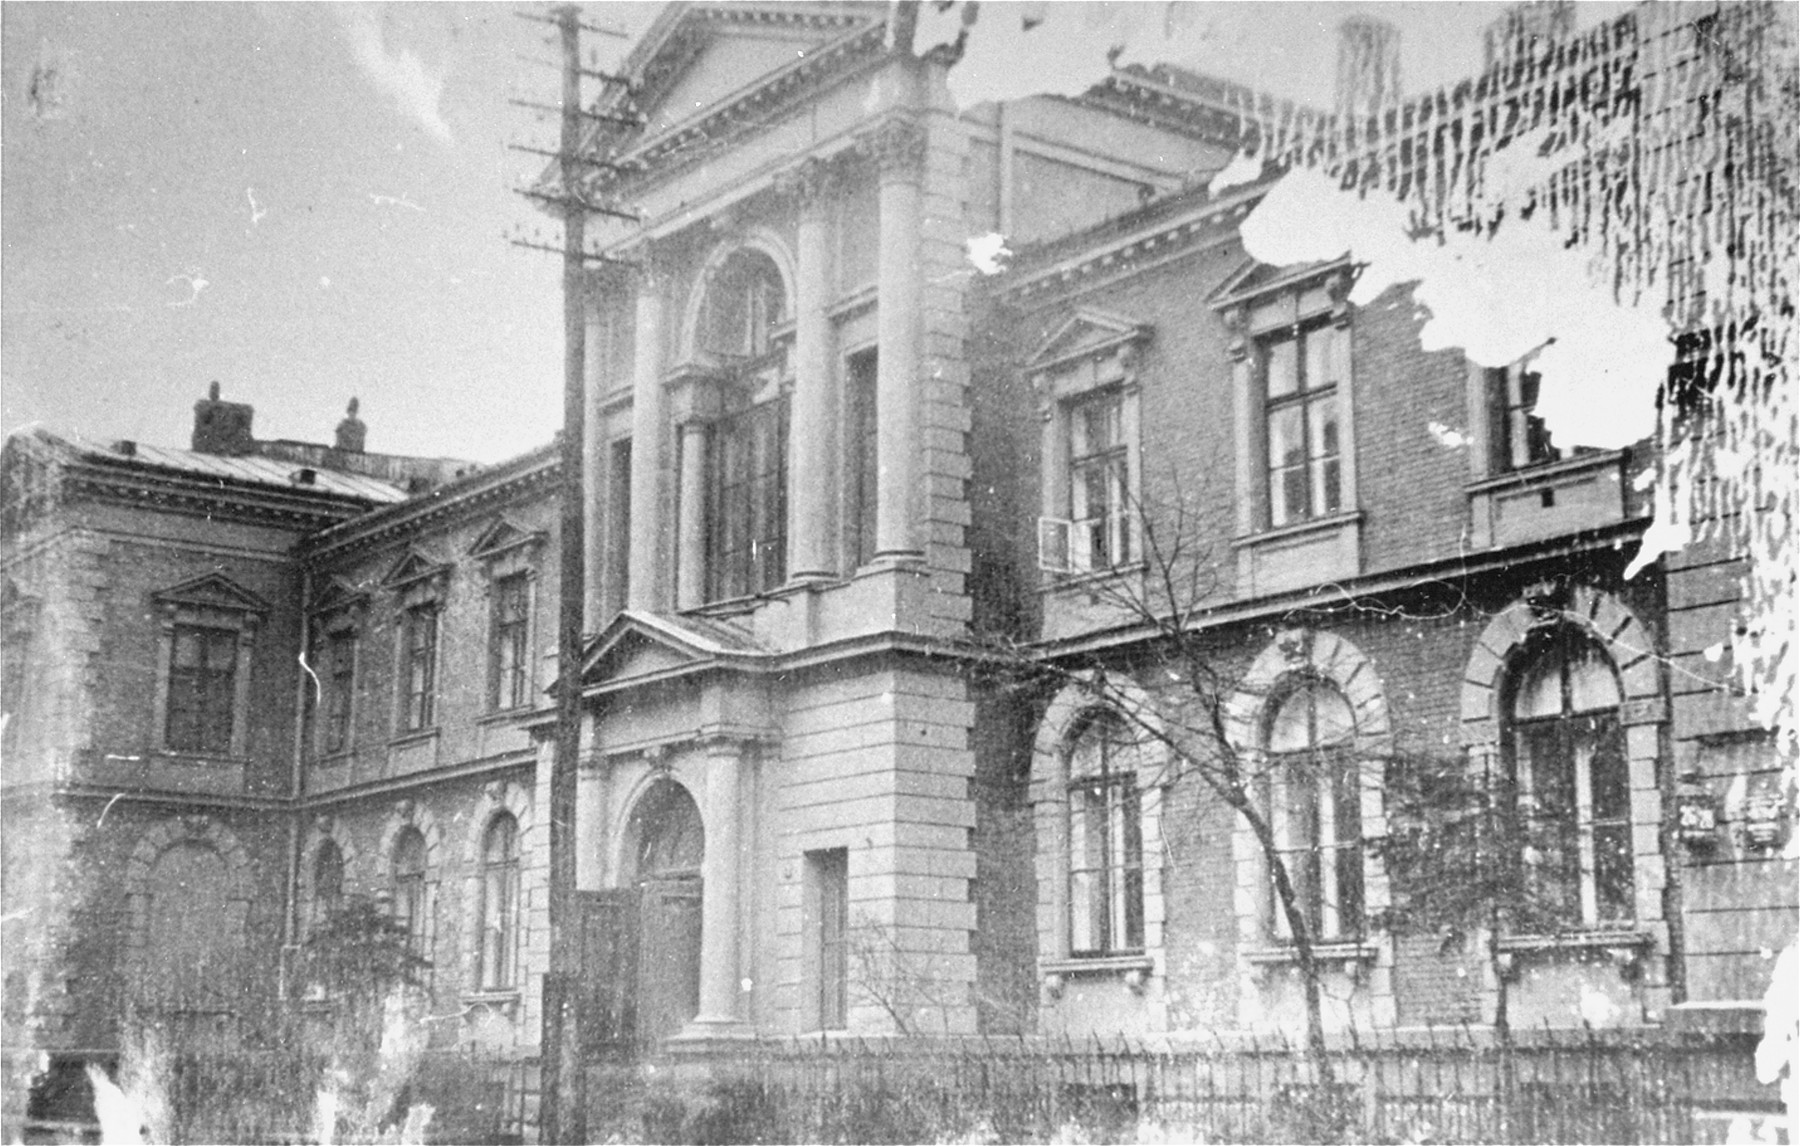 Exterior of the Jewish Community building, headquarters of the Warsaw Jewish Council, on 20 Grzybowska Street.